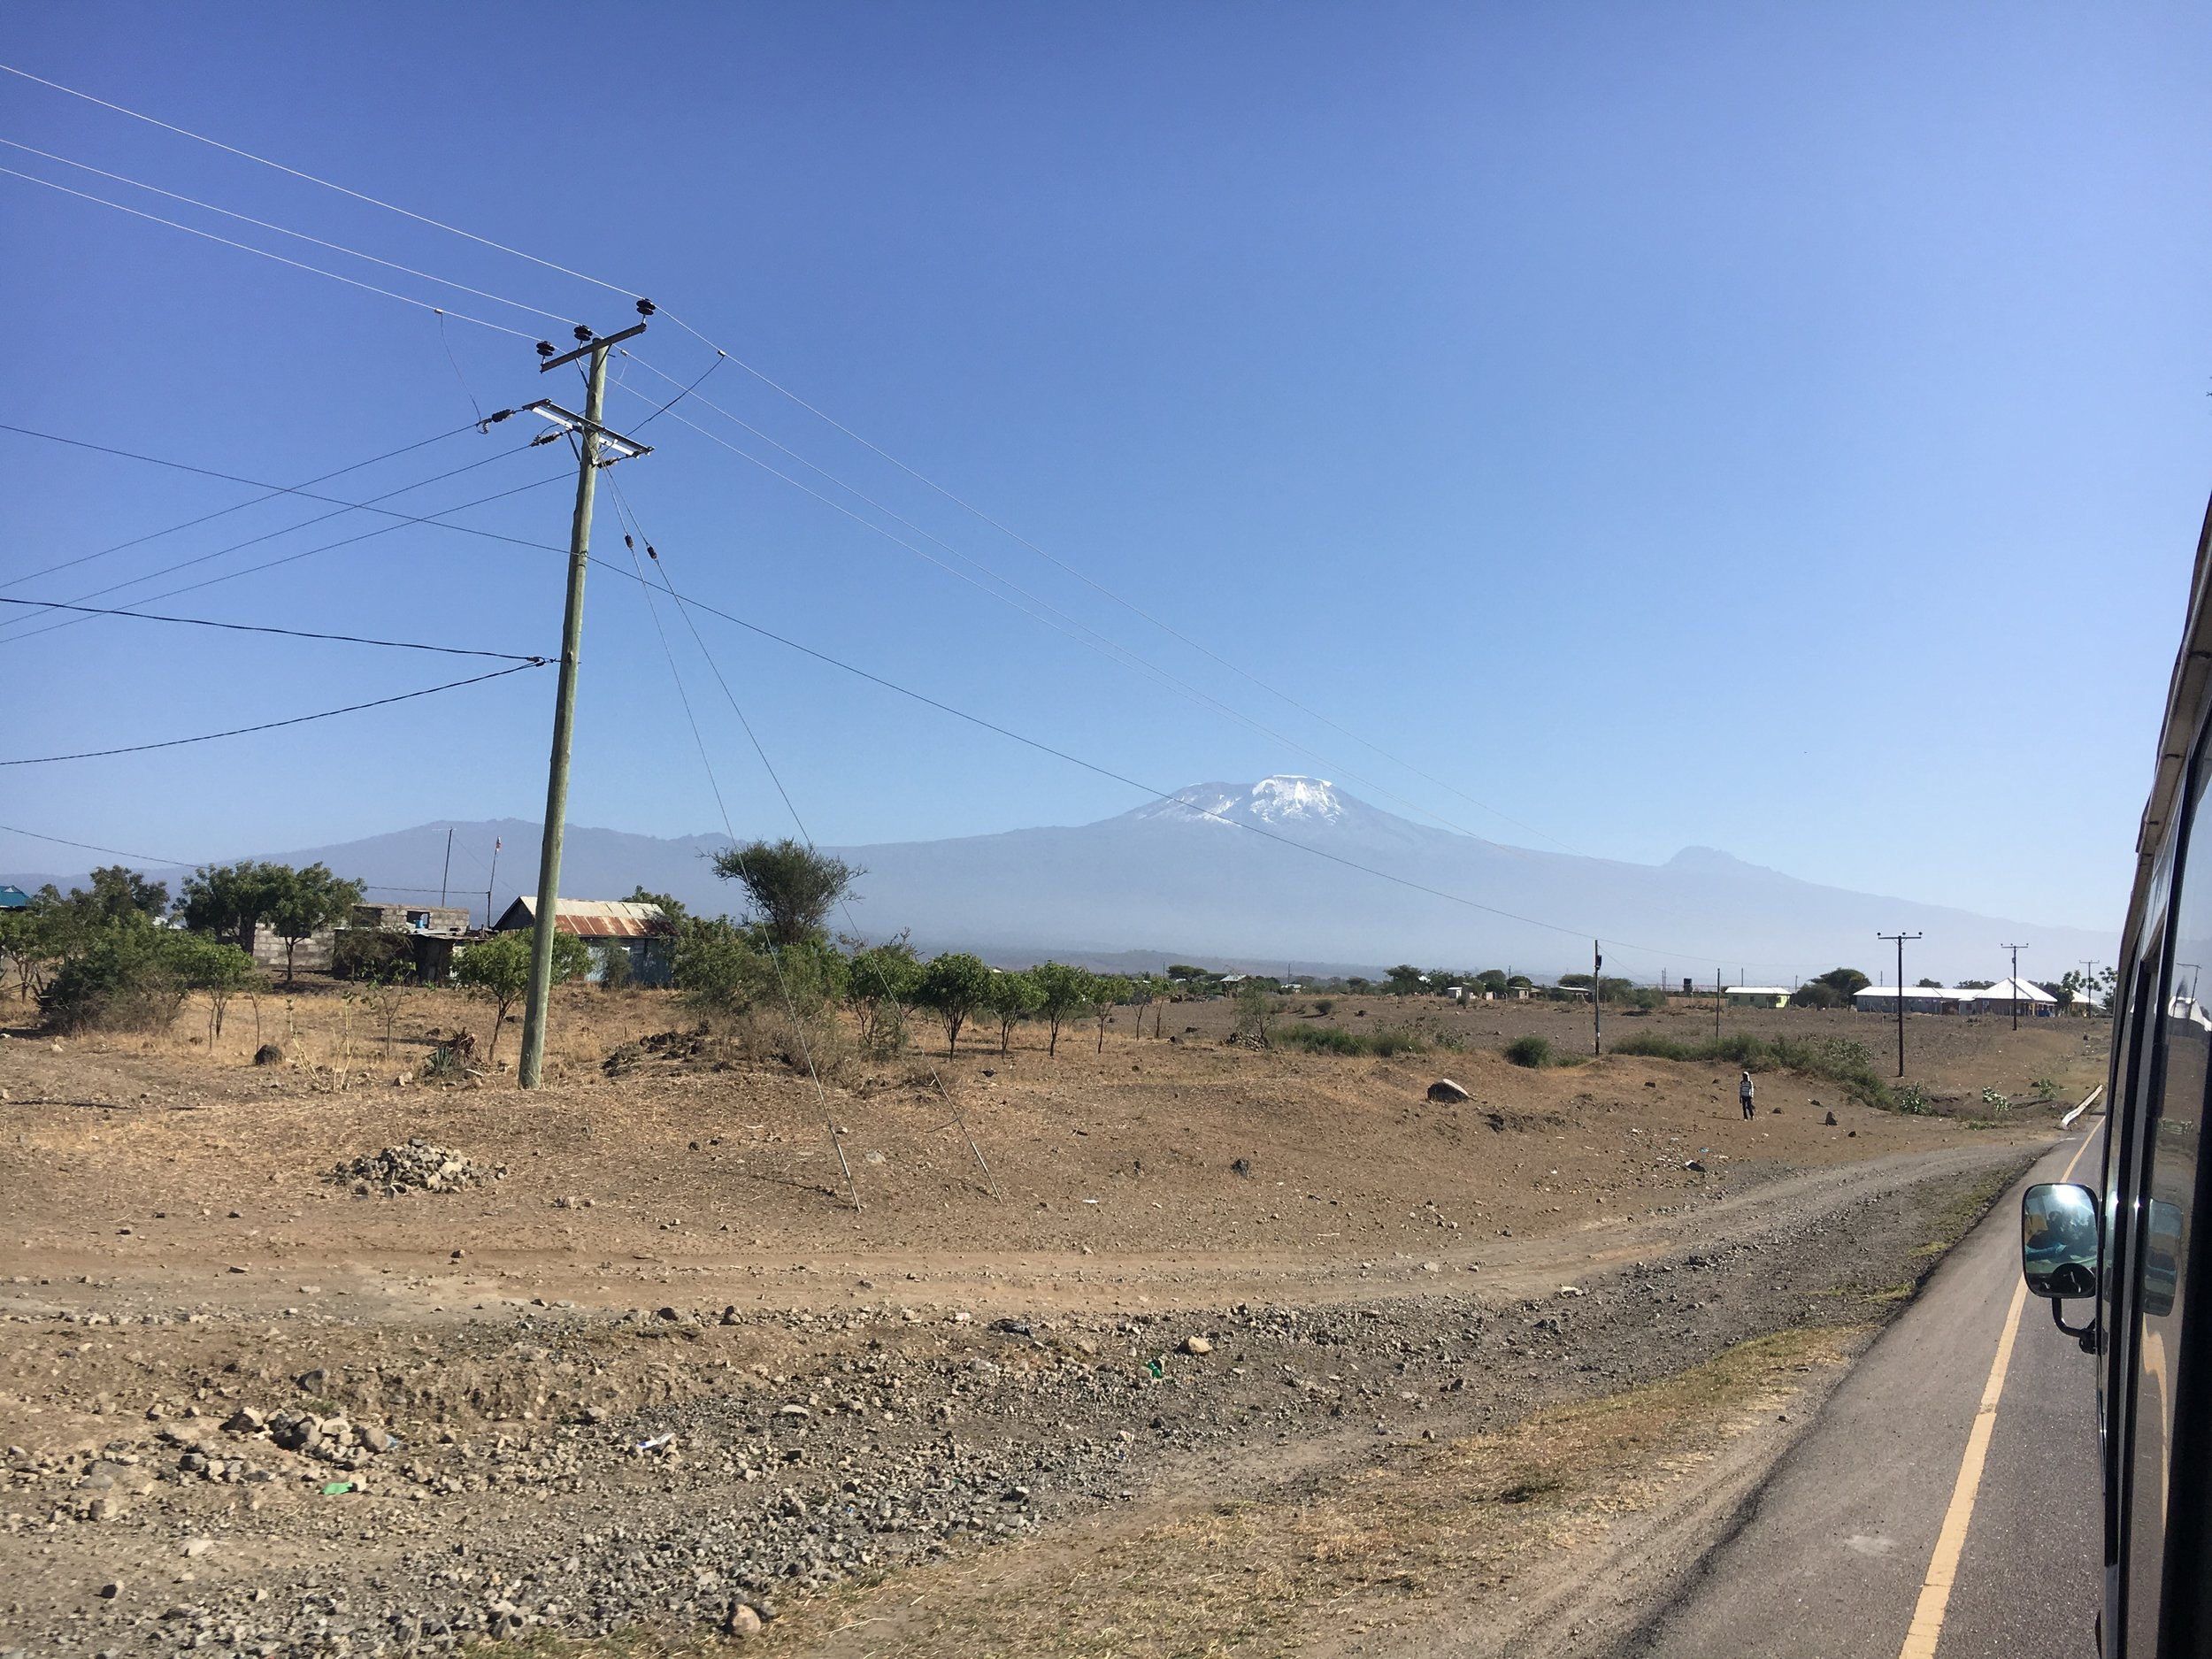 Another perspective, this time from the ground. This is where I started to get totally overwhelmed and nervous. I knew the mountain was big, but seeing Kili in person is a sight to behold. (Pic courtesy of hiking pal Jane!)